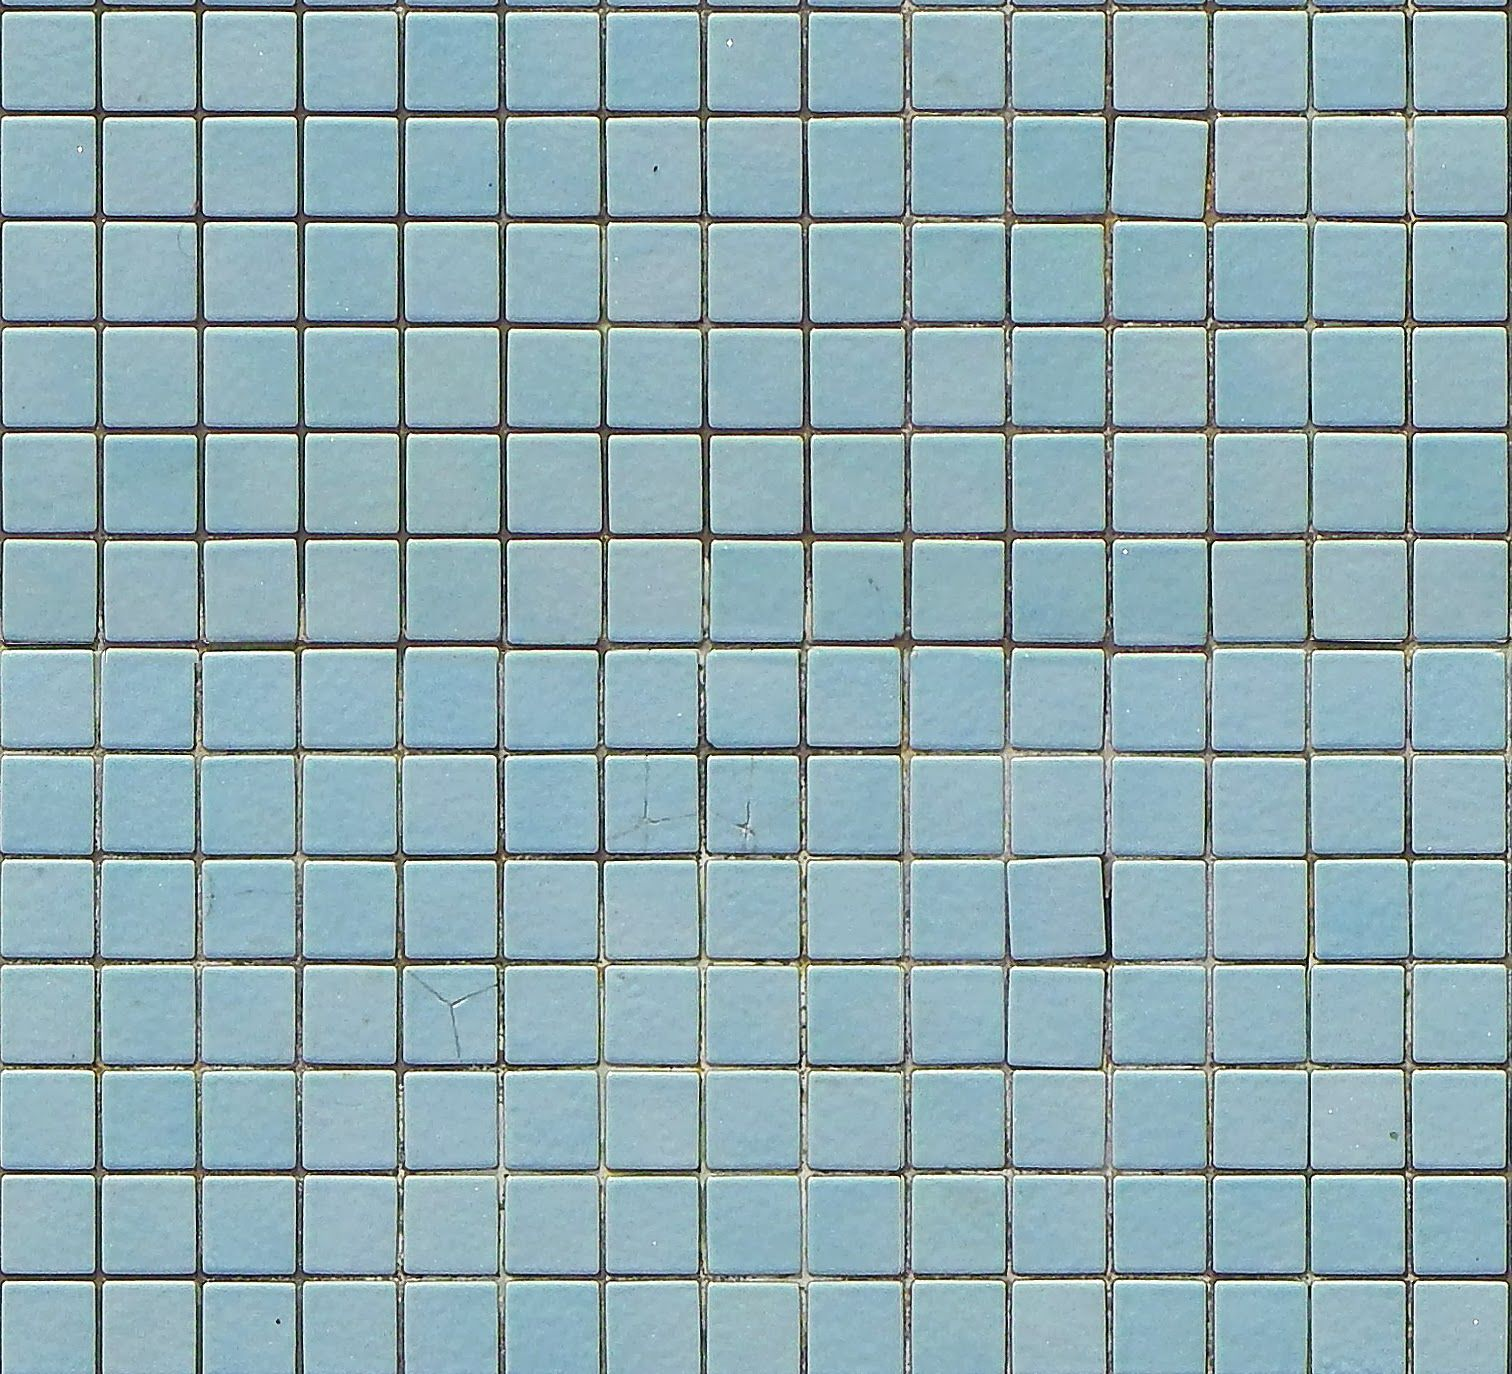 Pin modern tile floor texture simple textured bathroom on pinterest - Tileable Blue Mosaic Pool Tiles Texture Maps Texturise